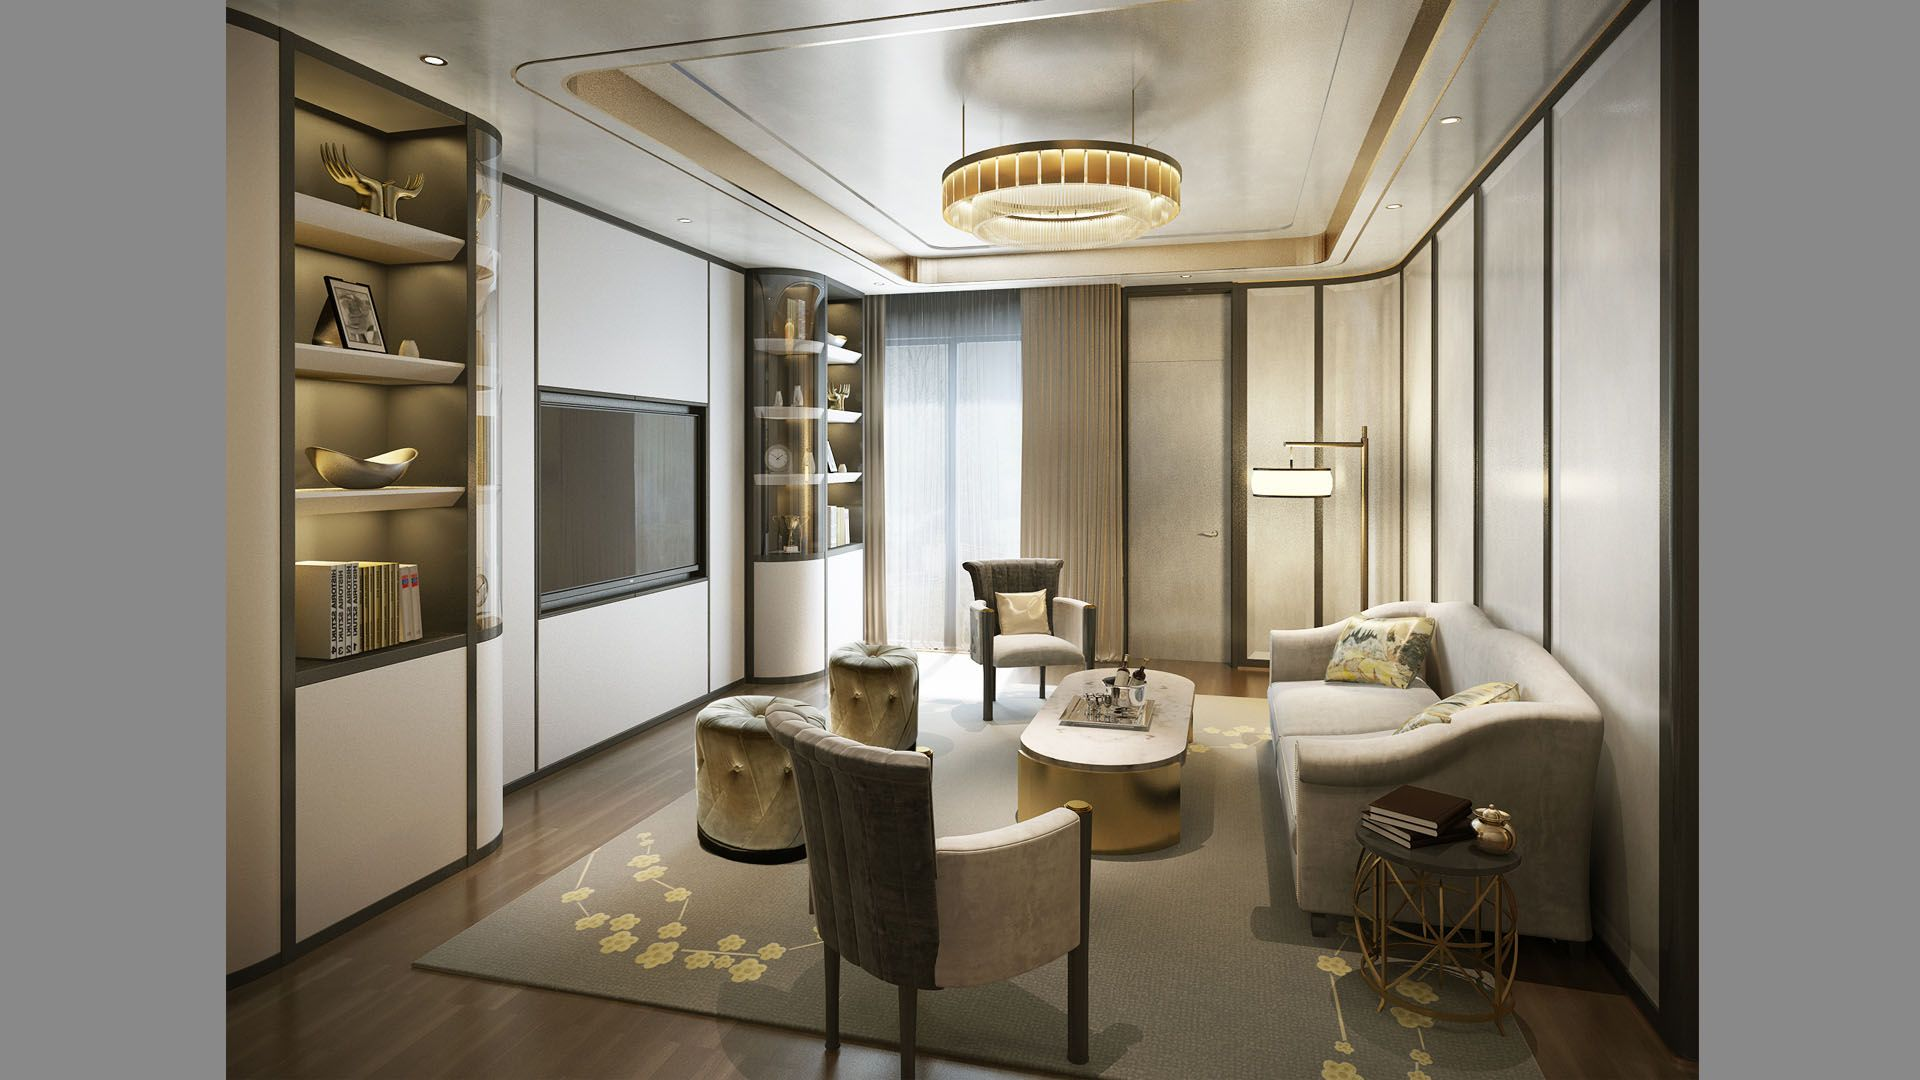 Pin By Elaine Fan On 场景 Interior Design Furniture House